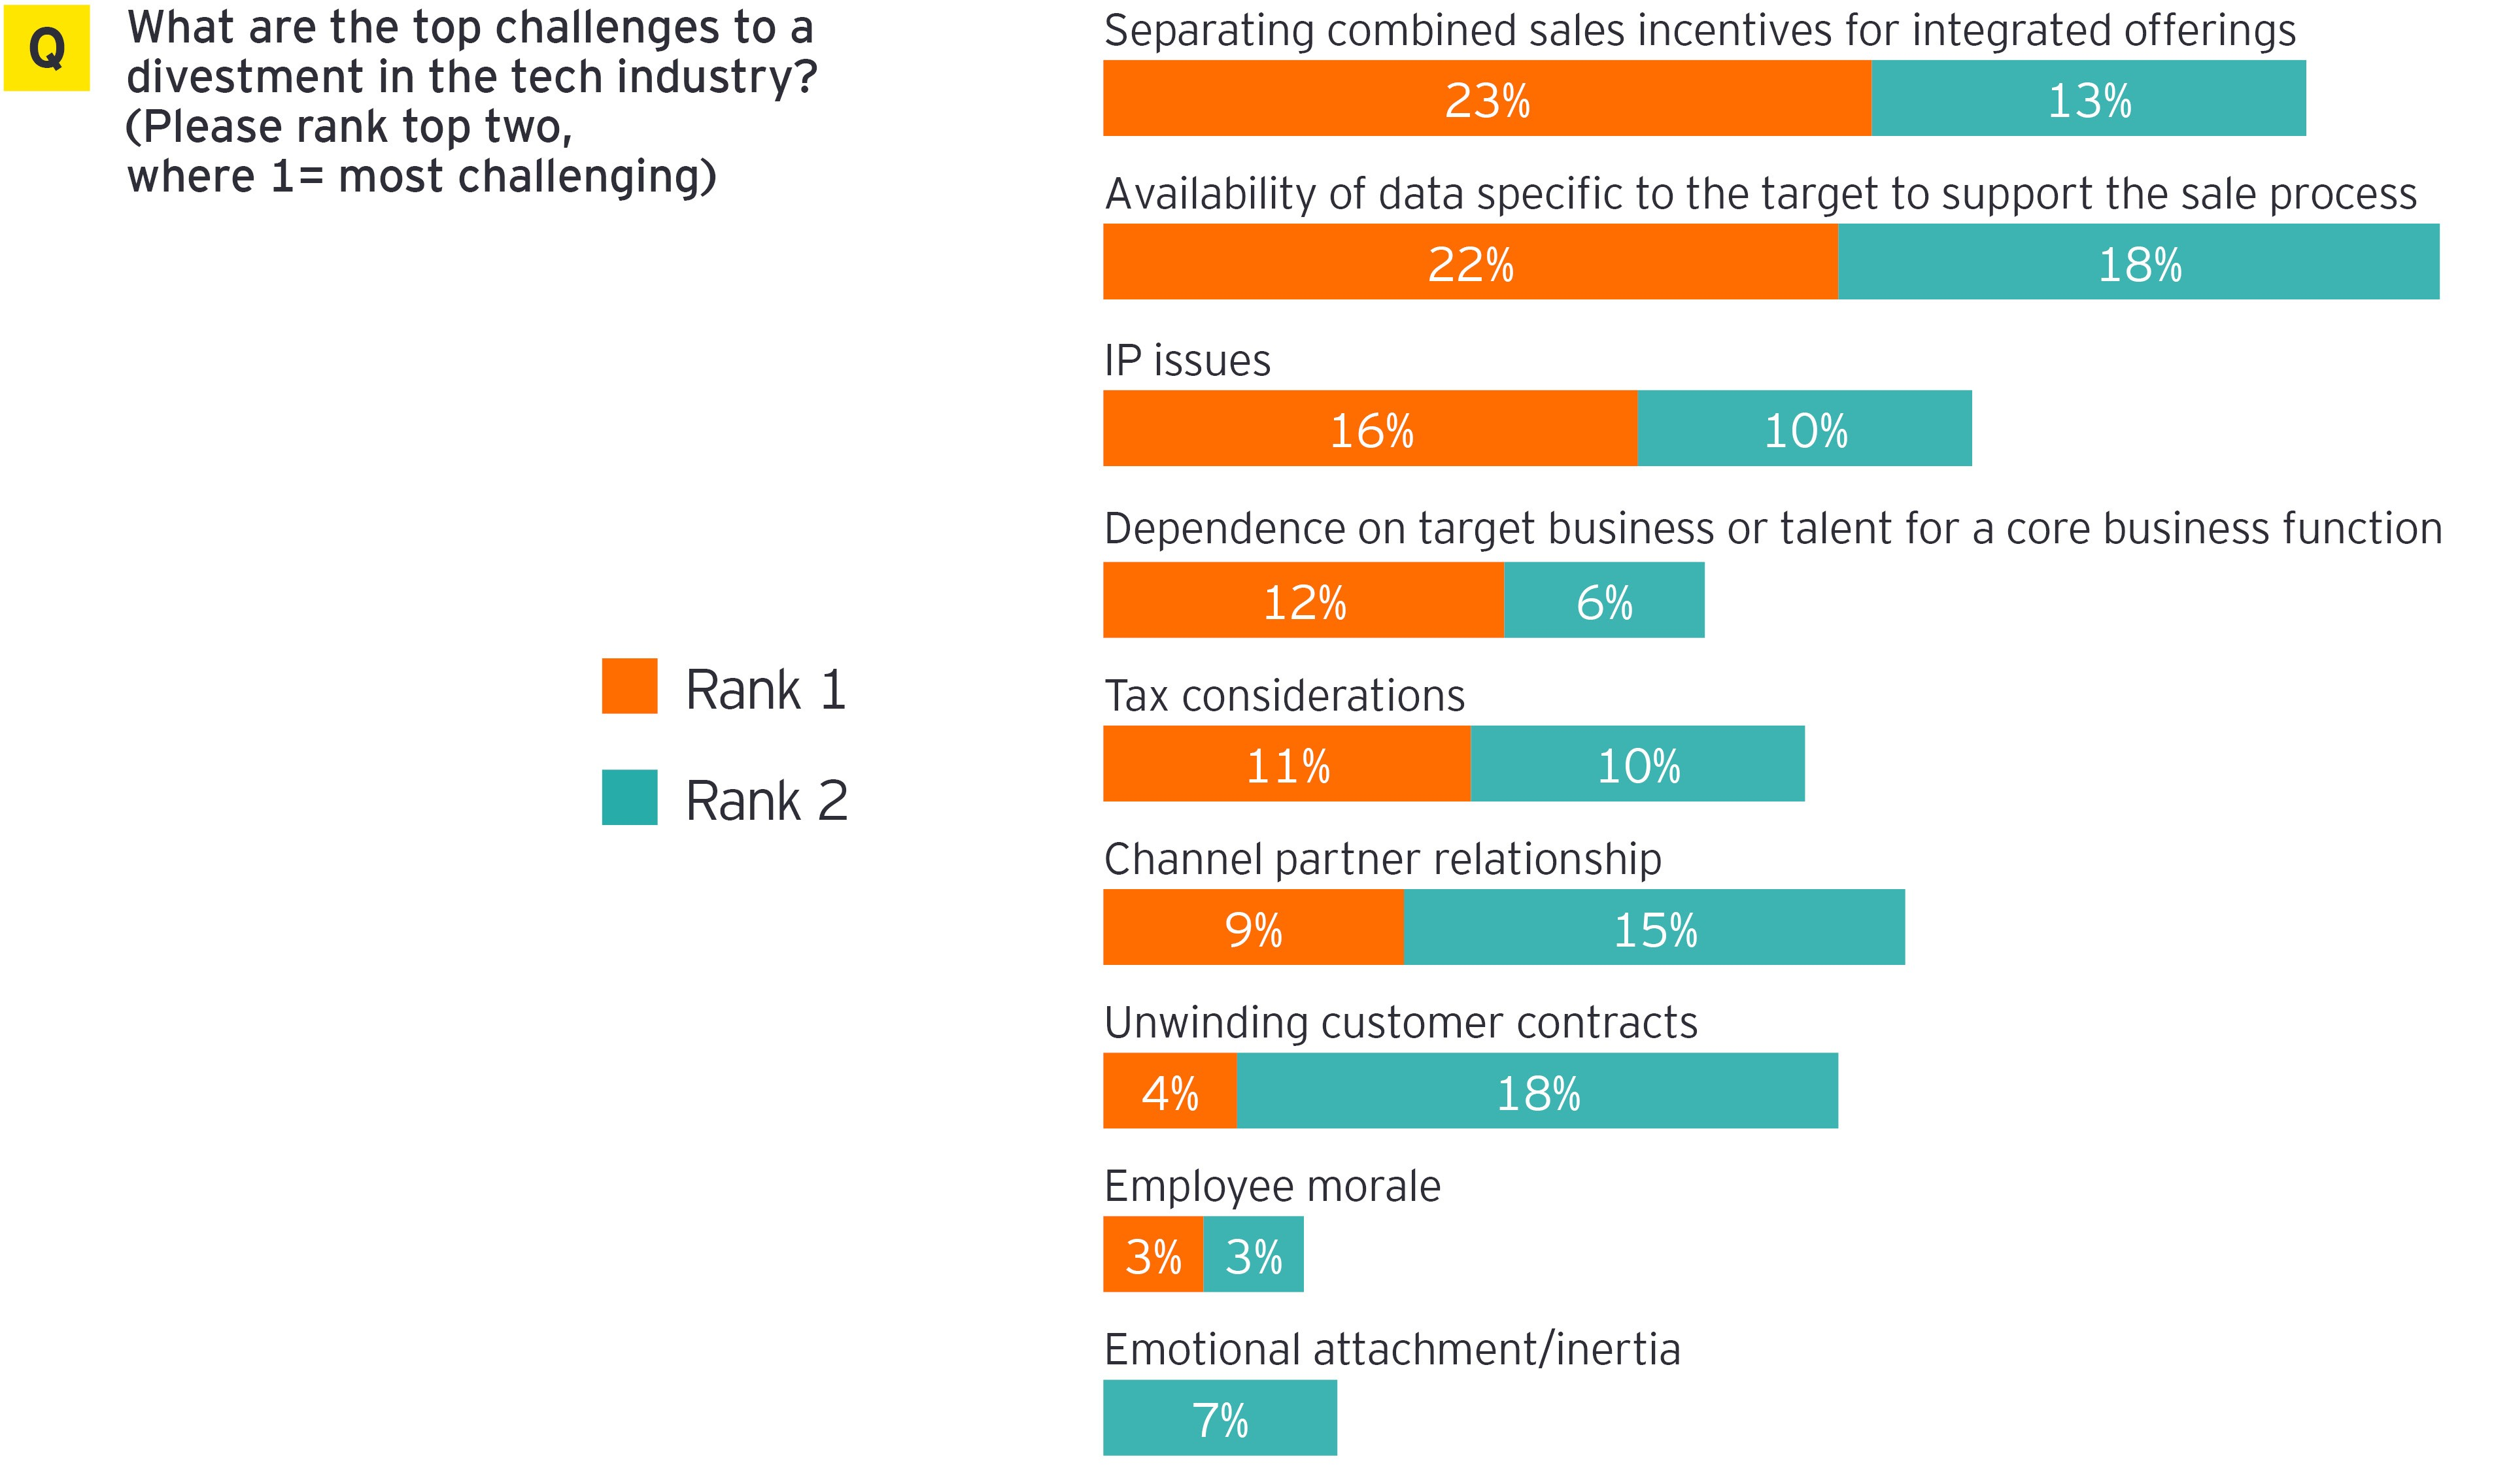 Top challenges to a divestment in the tech industry